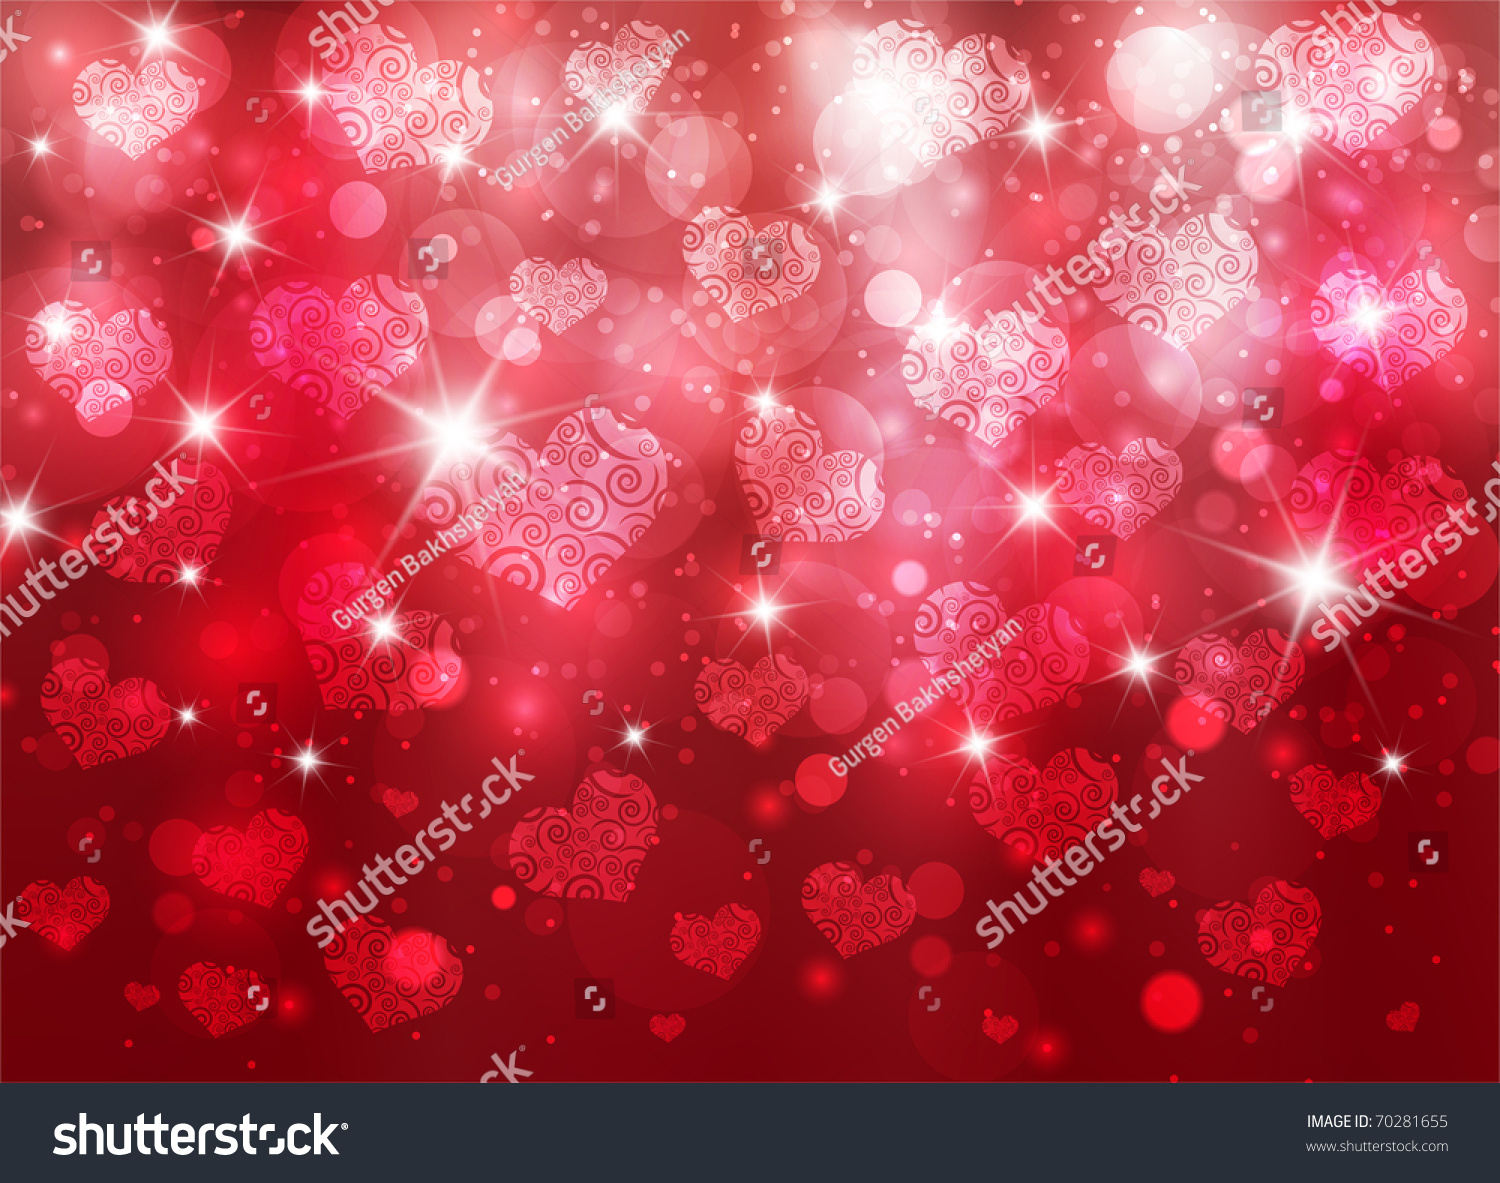 Beautiful Valentine Background With Nice Hearts And Sparks